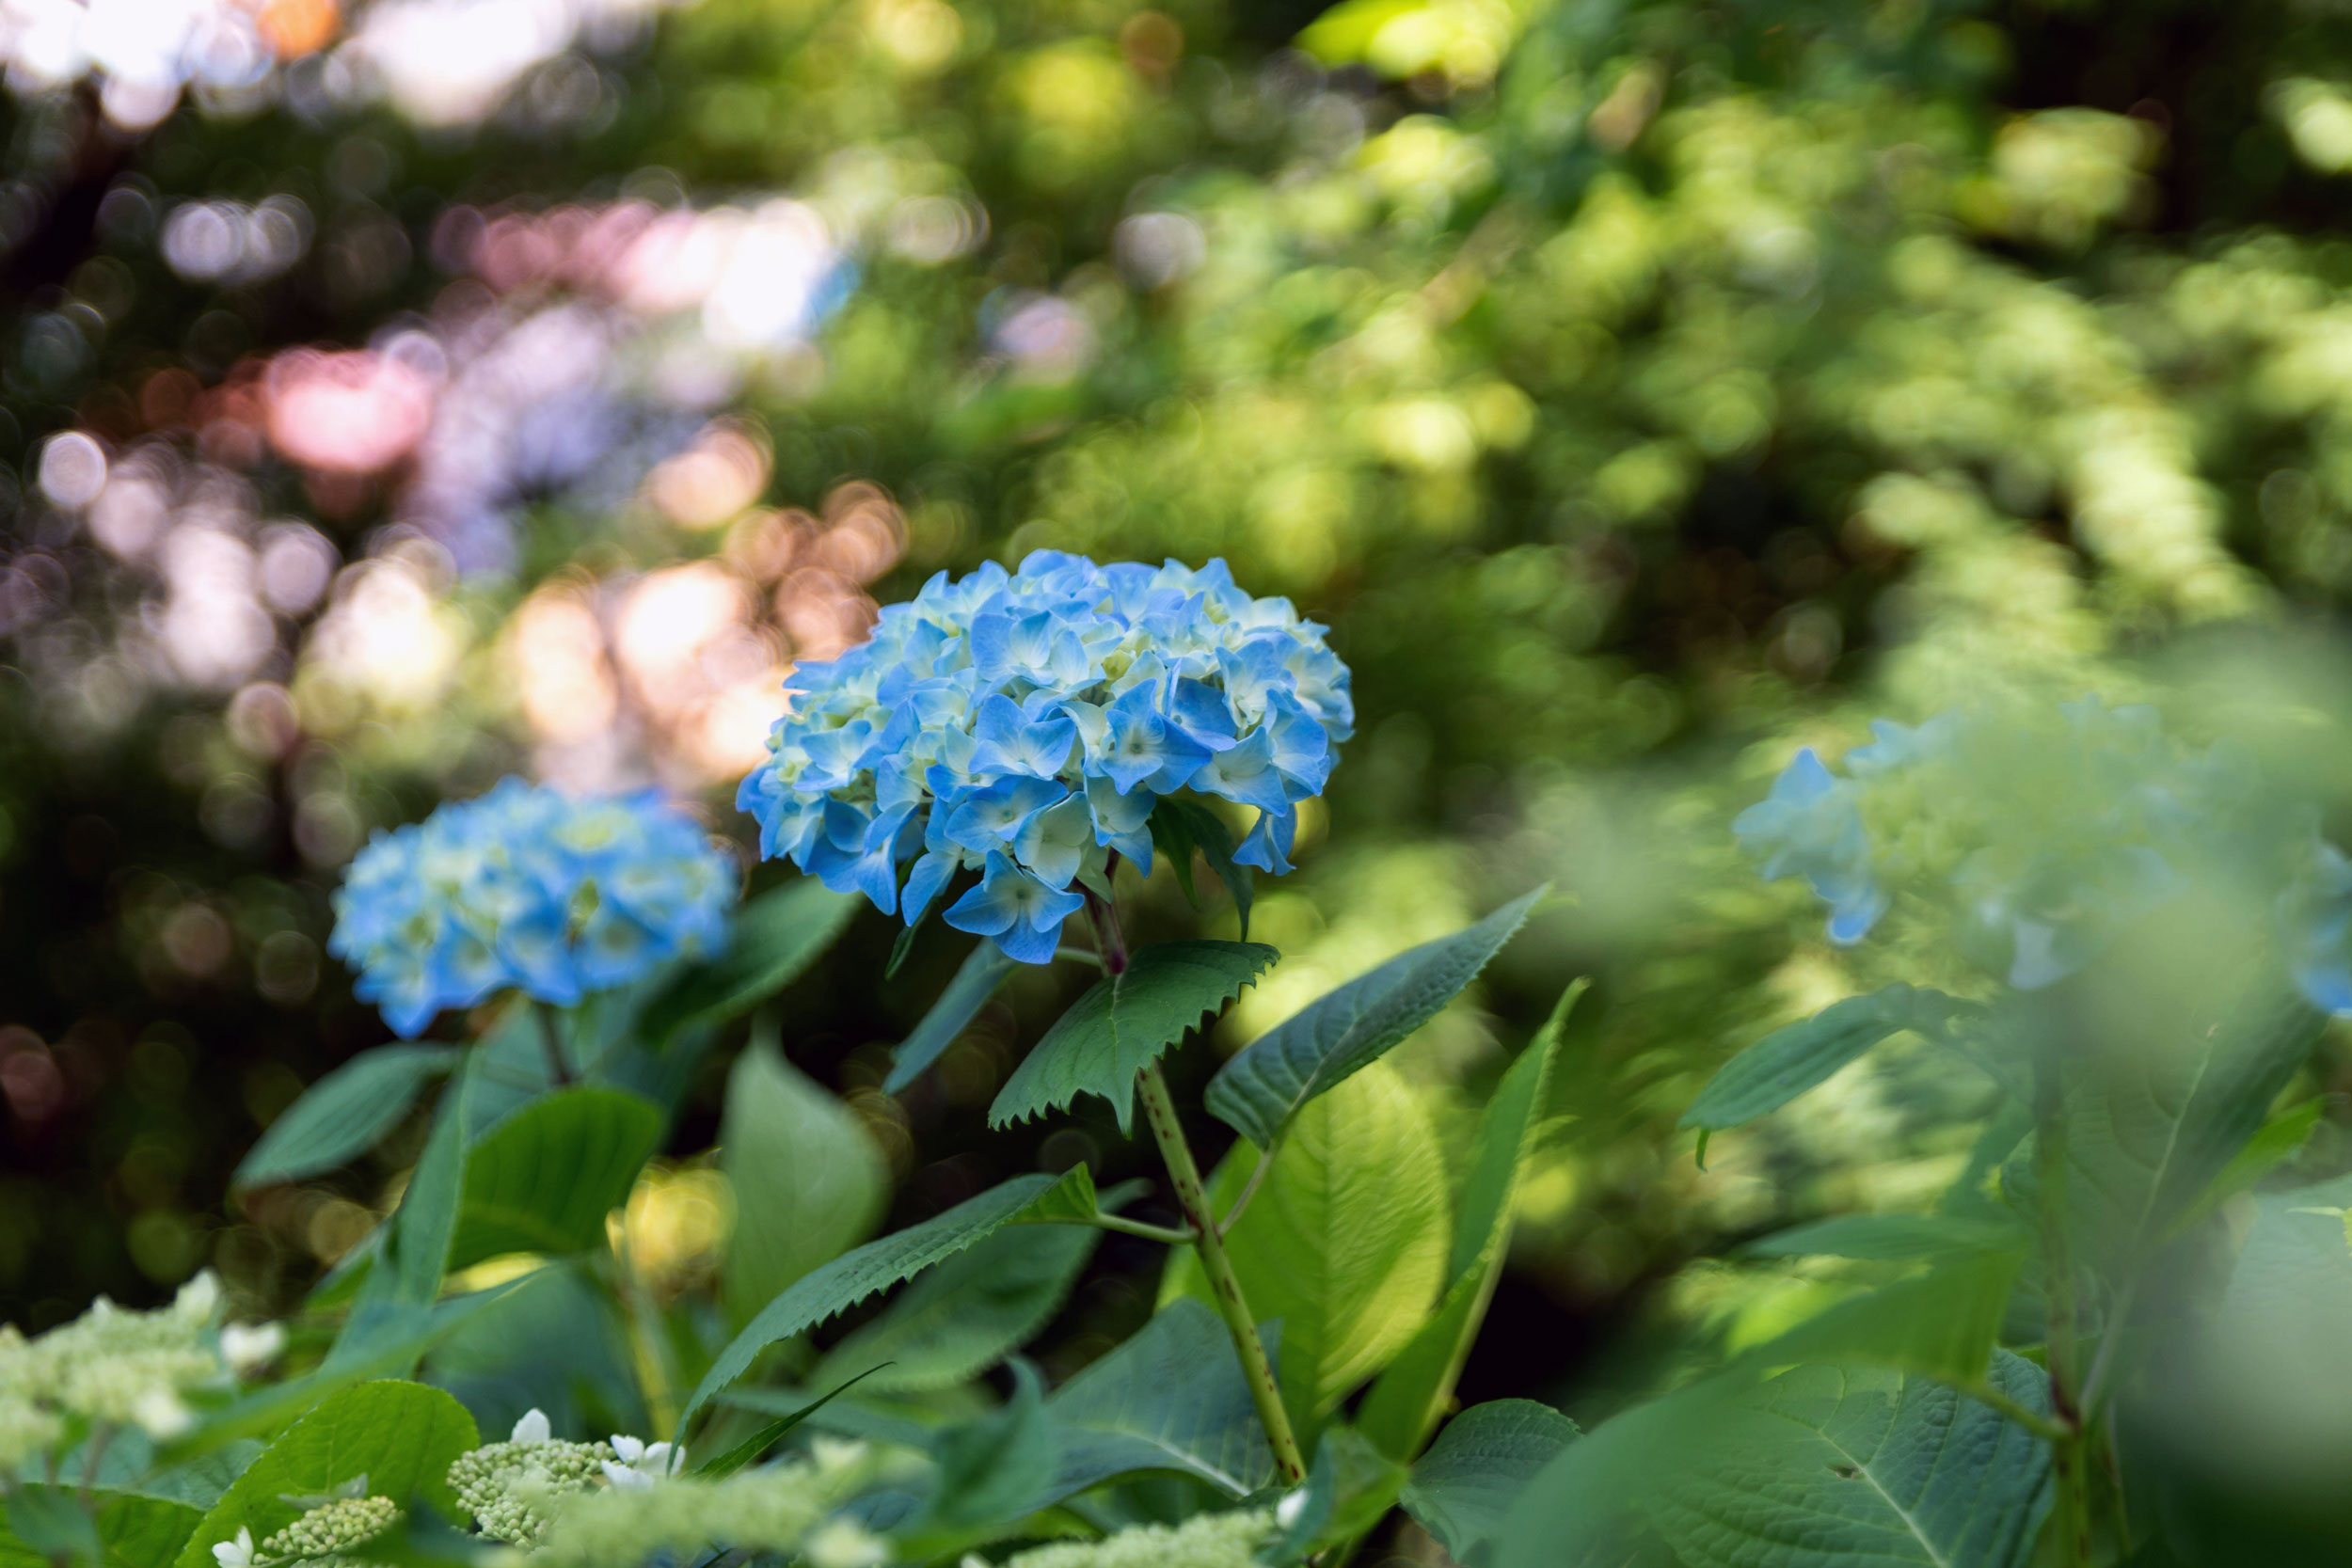 Ajisai flowers (Hydrangea), popular in late spring/early summer, on the Hase-dera temple grounds